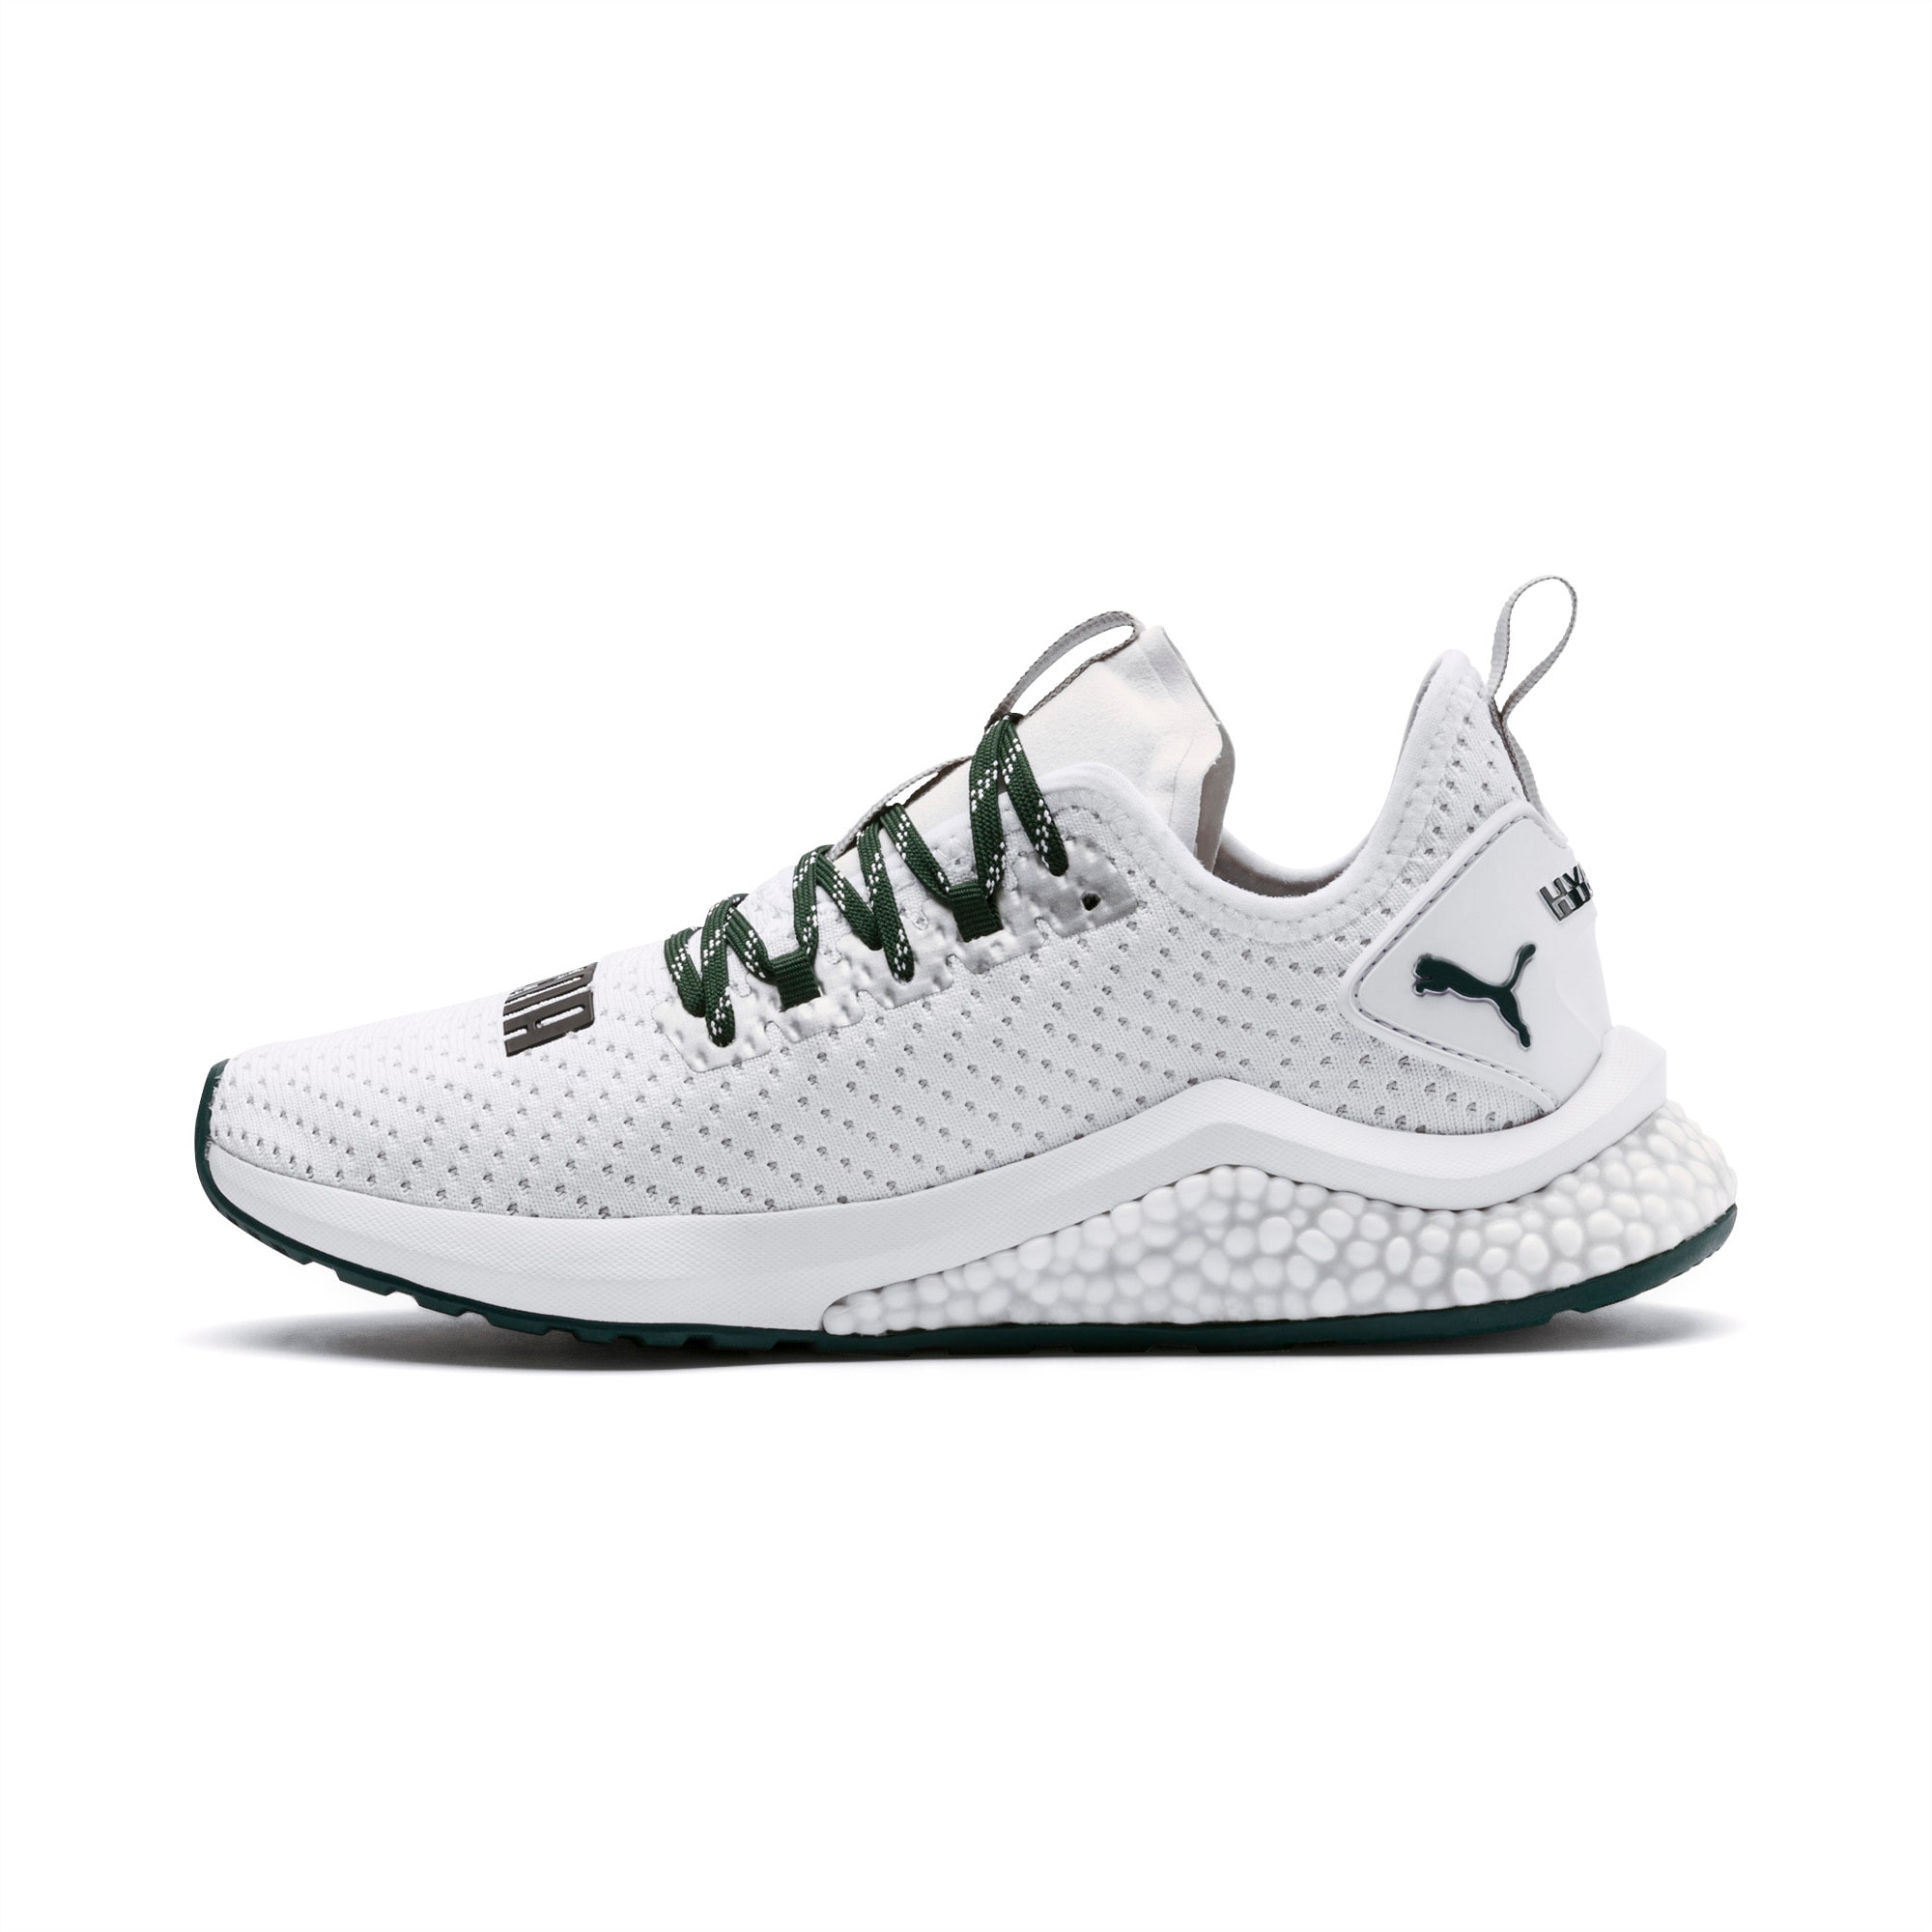 HYBRID NX Running Shoes Women's Trailblazer b7y6fg